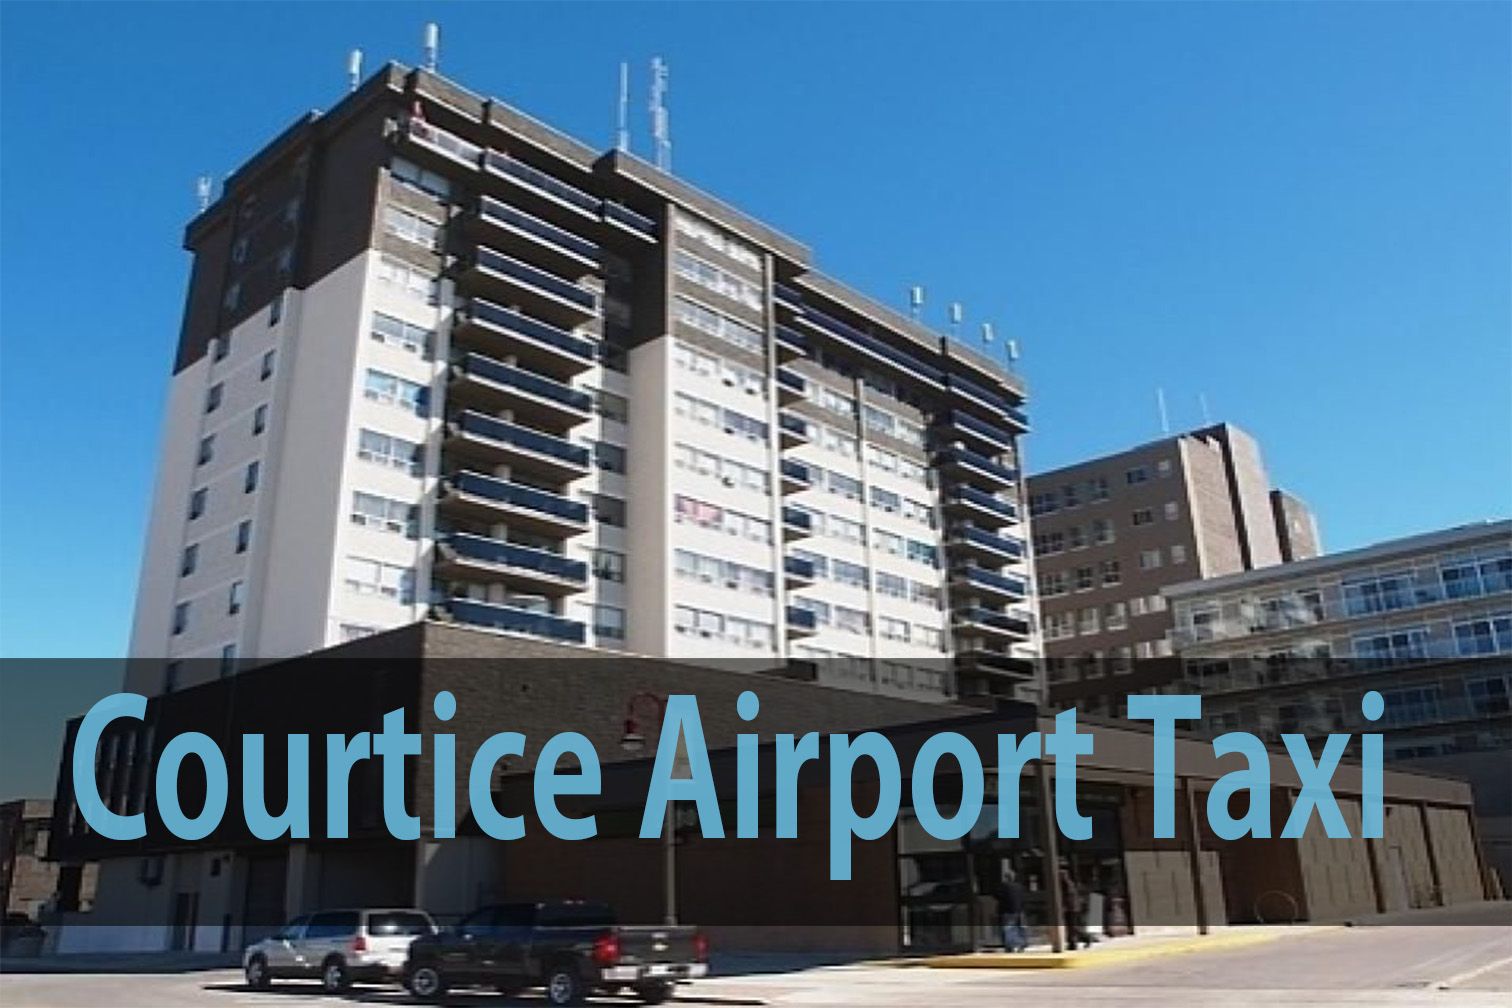 Courtice airport taxi